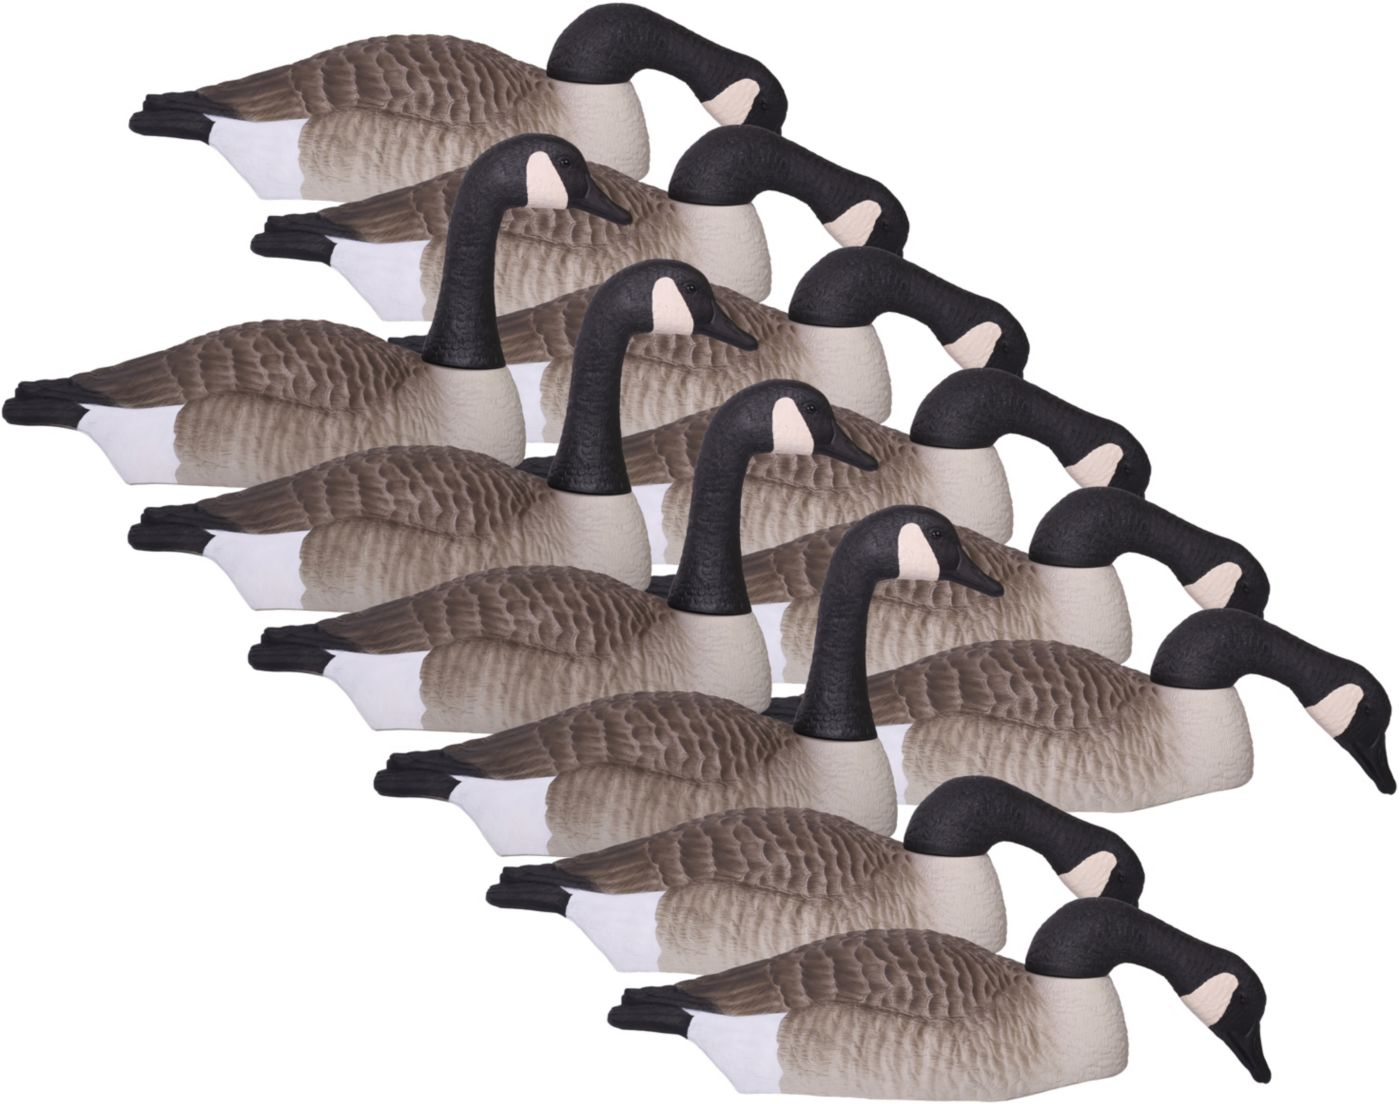 Hard Core Canada Goose Touchdown Shell Decoys – 12 Pack